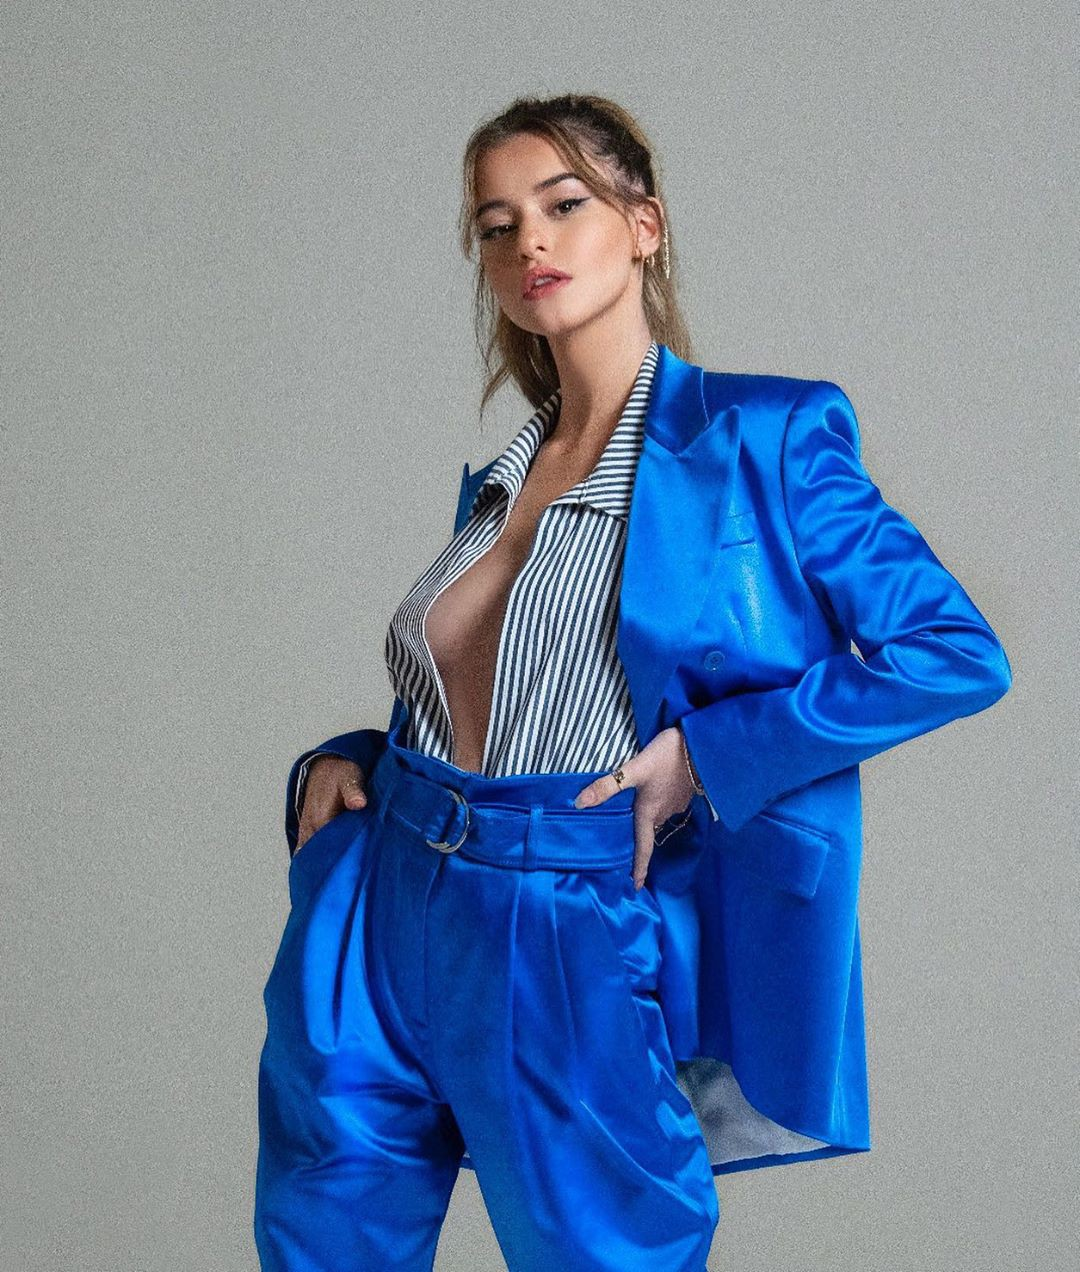 Electric blue and cobalt blue leather, jacket, wardrobe ideas